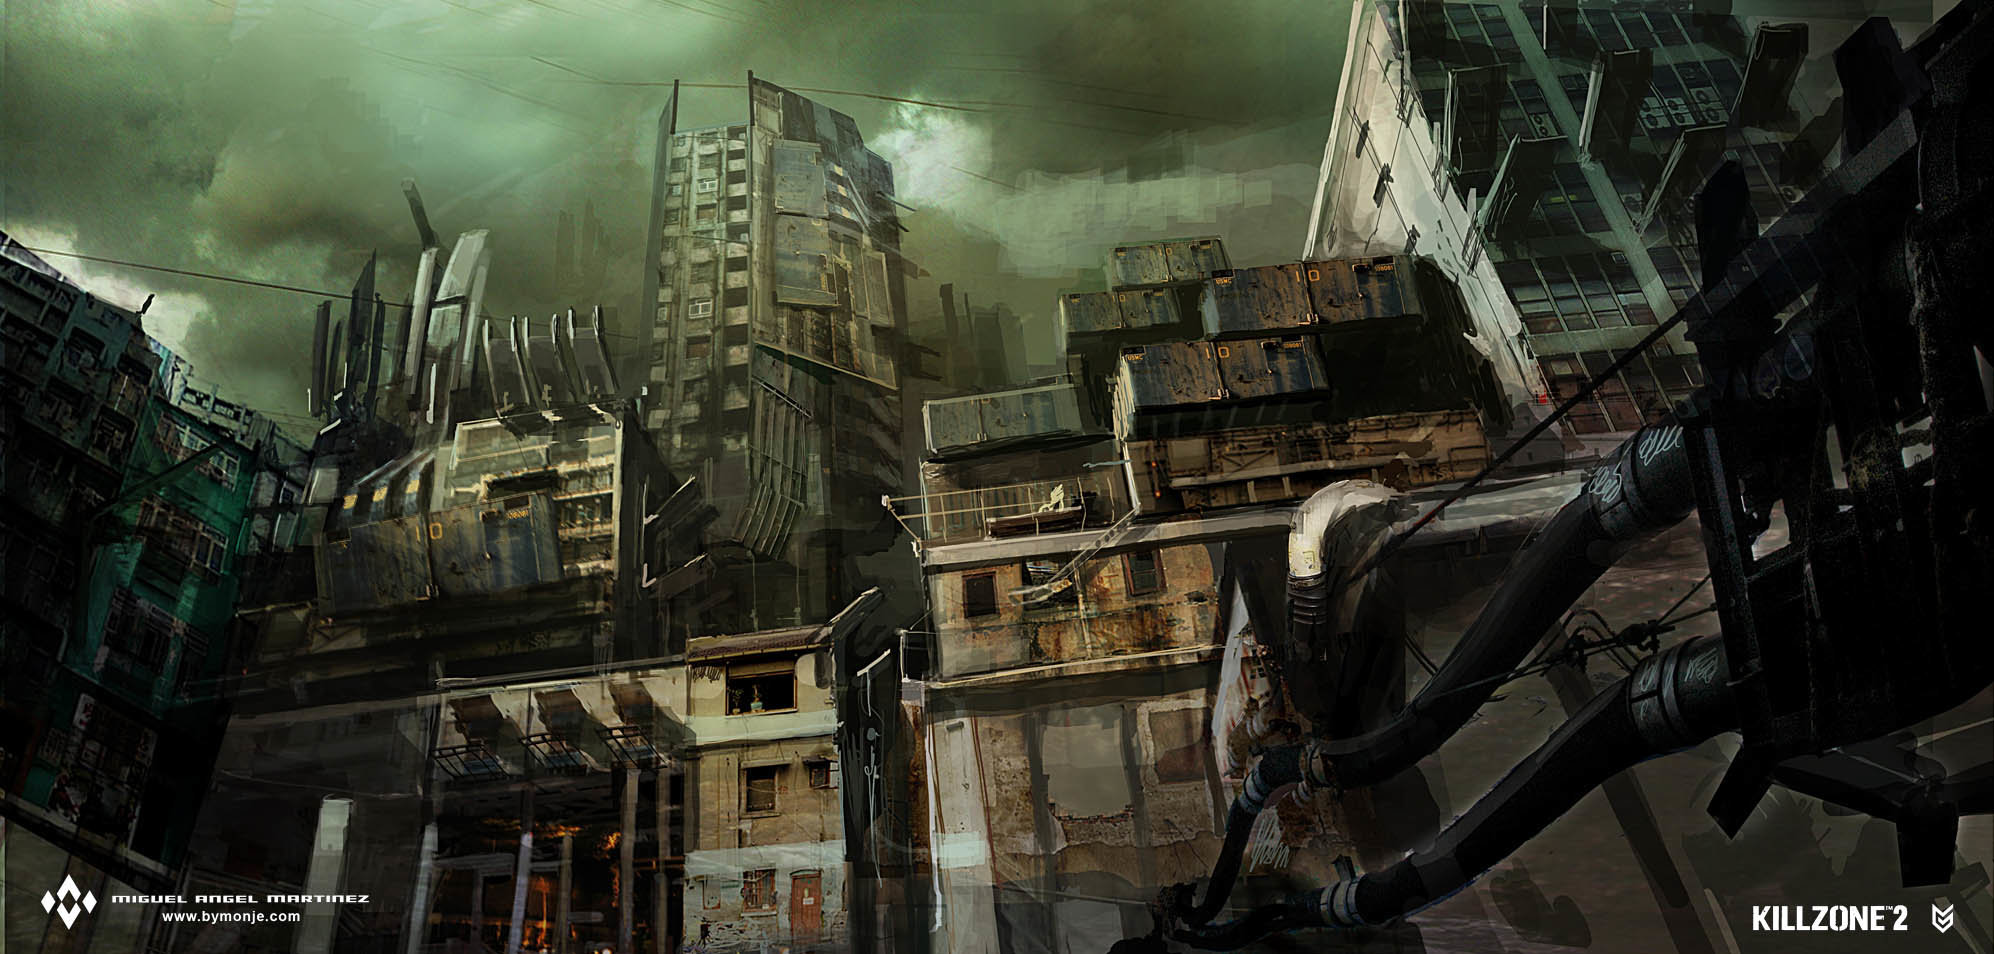 killzone-2-helghan-concept-art-miguel-bymonje